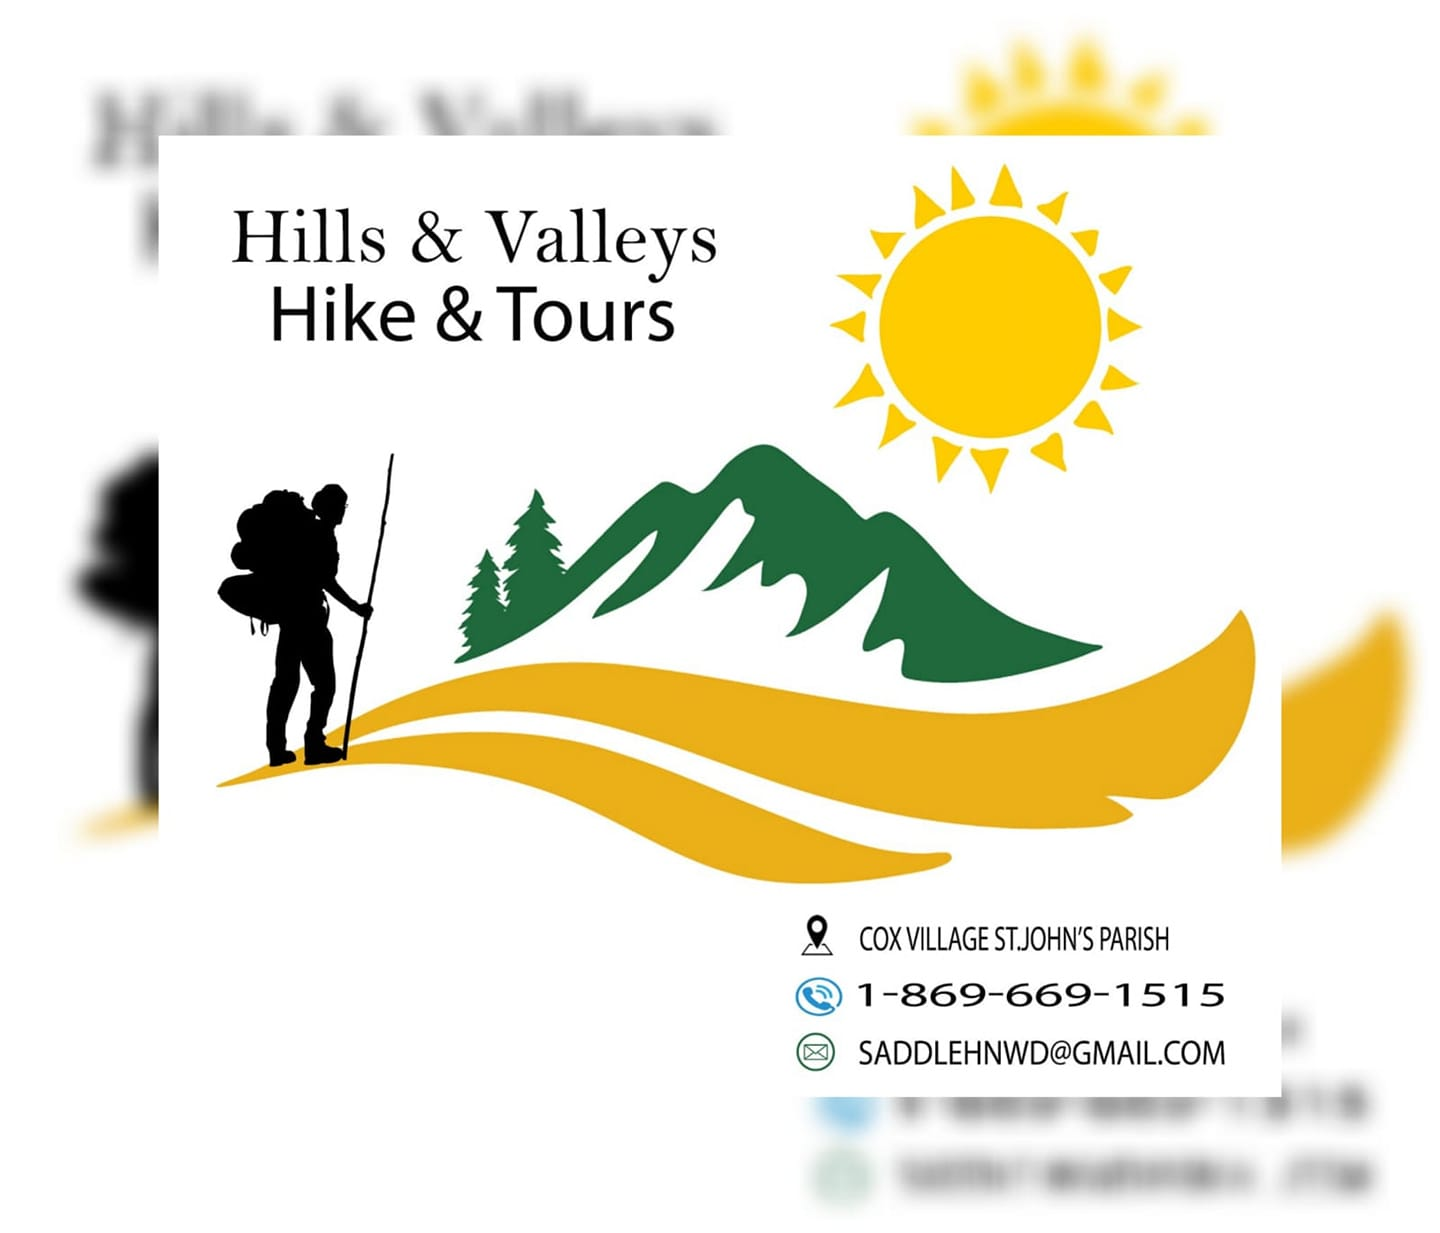 Hills and Valleys Hike and Tours